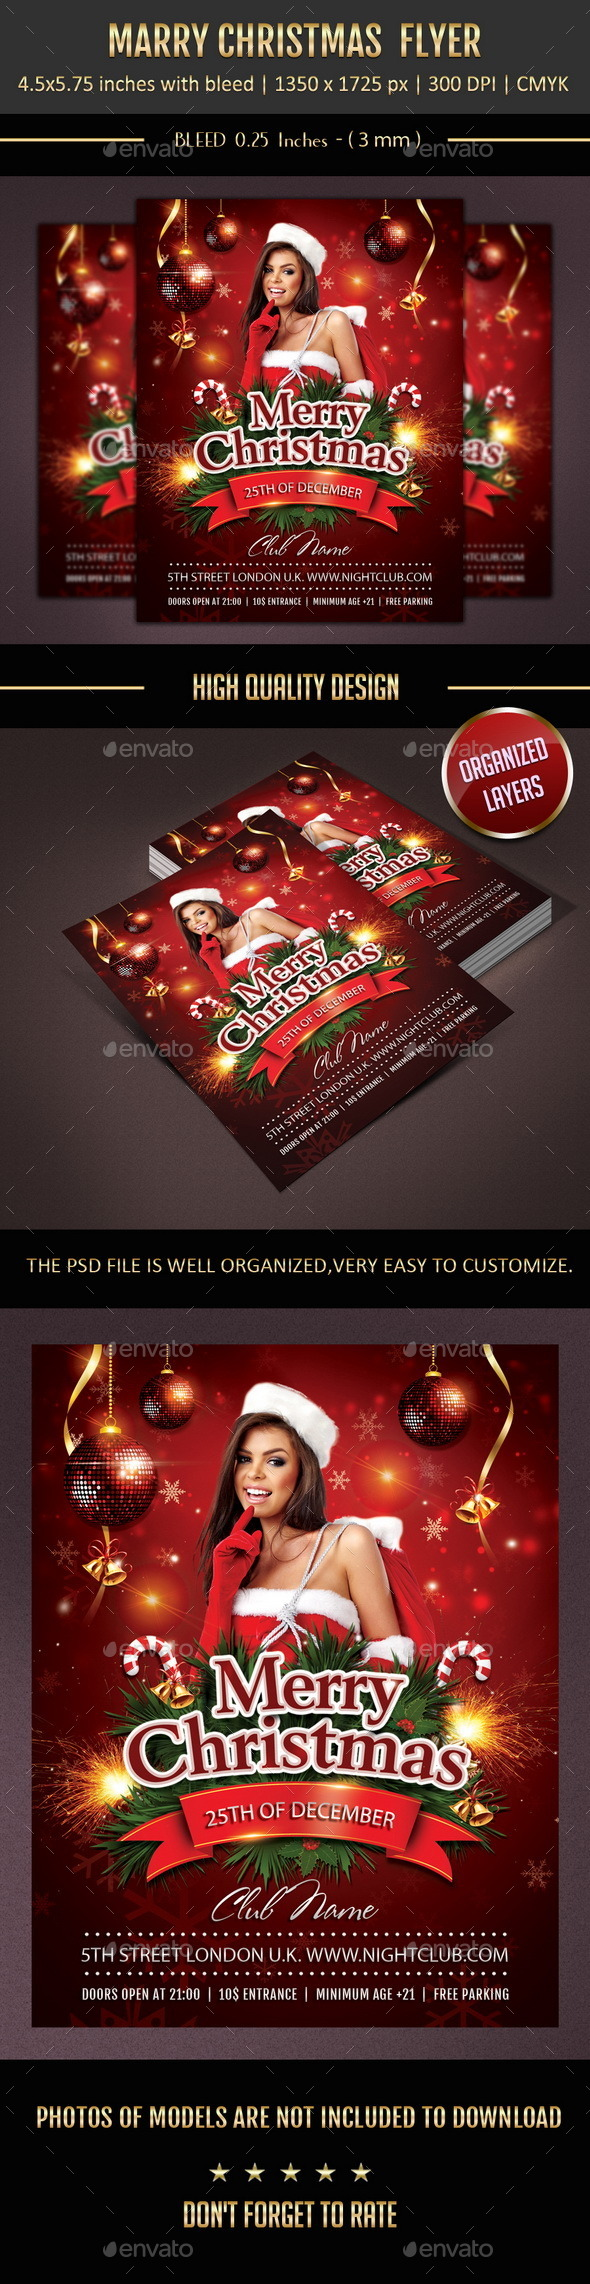 GraphicRiver Merry Christmas Flyer 9648780